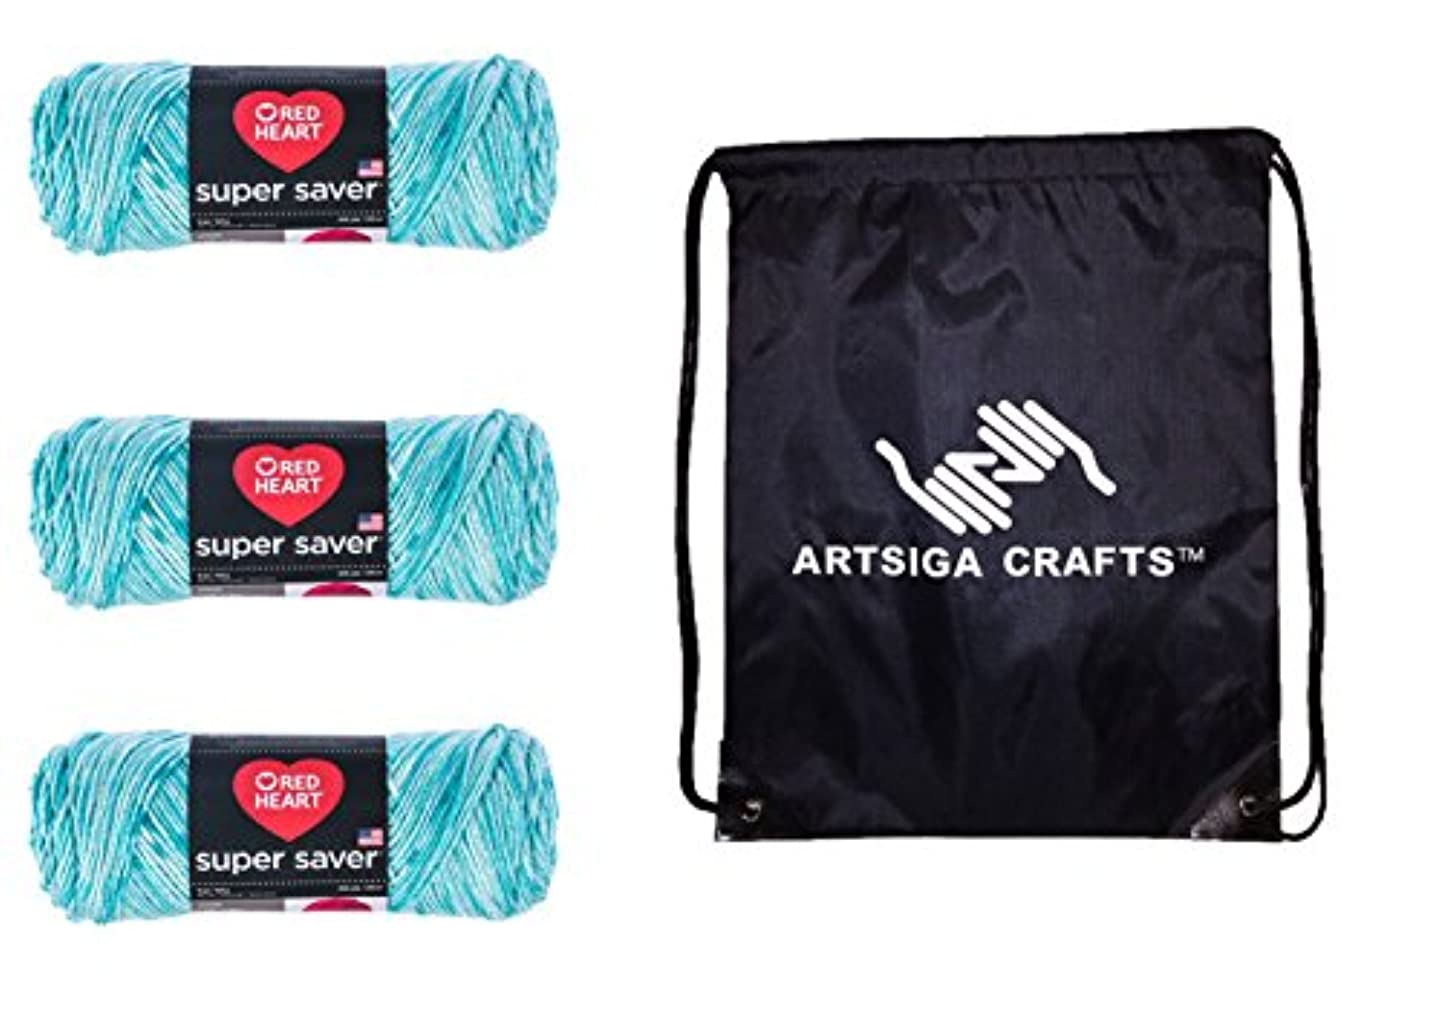 Red Heart Super Saver Knitting Yarn Topaz 3-Skein Factory Pack (Same Dyelot) E300-3974 Bundle with 1 Artsiga Crafts Project Bag